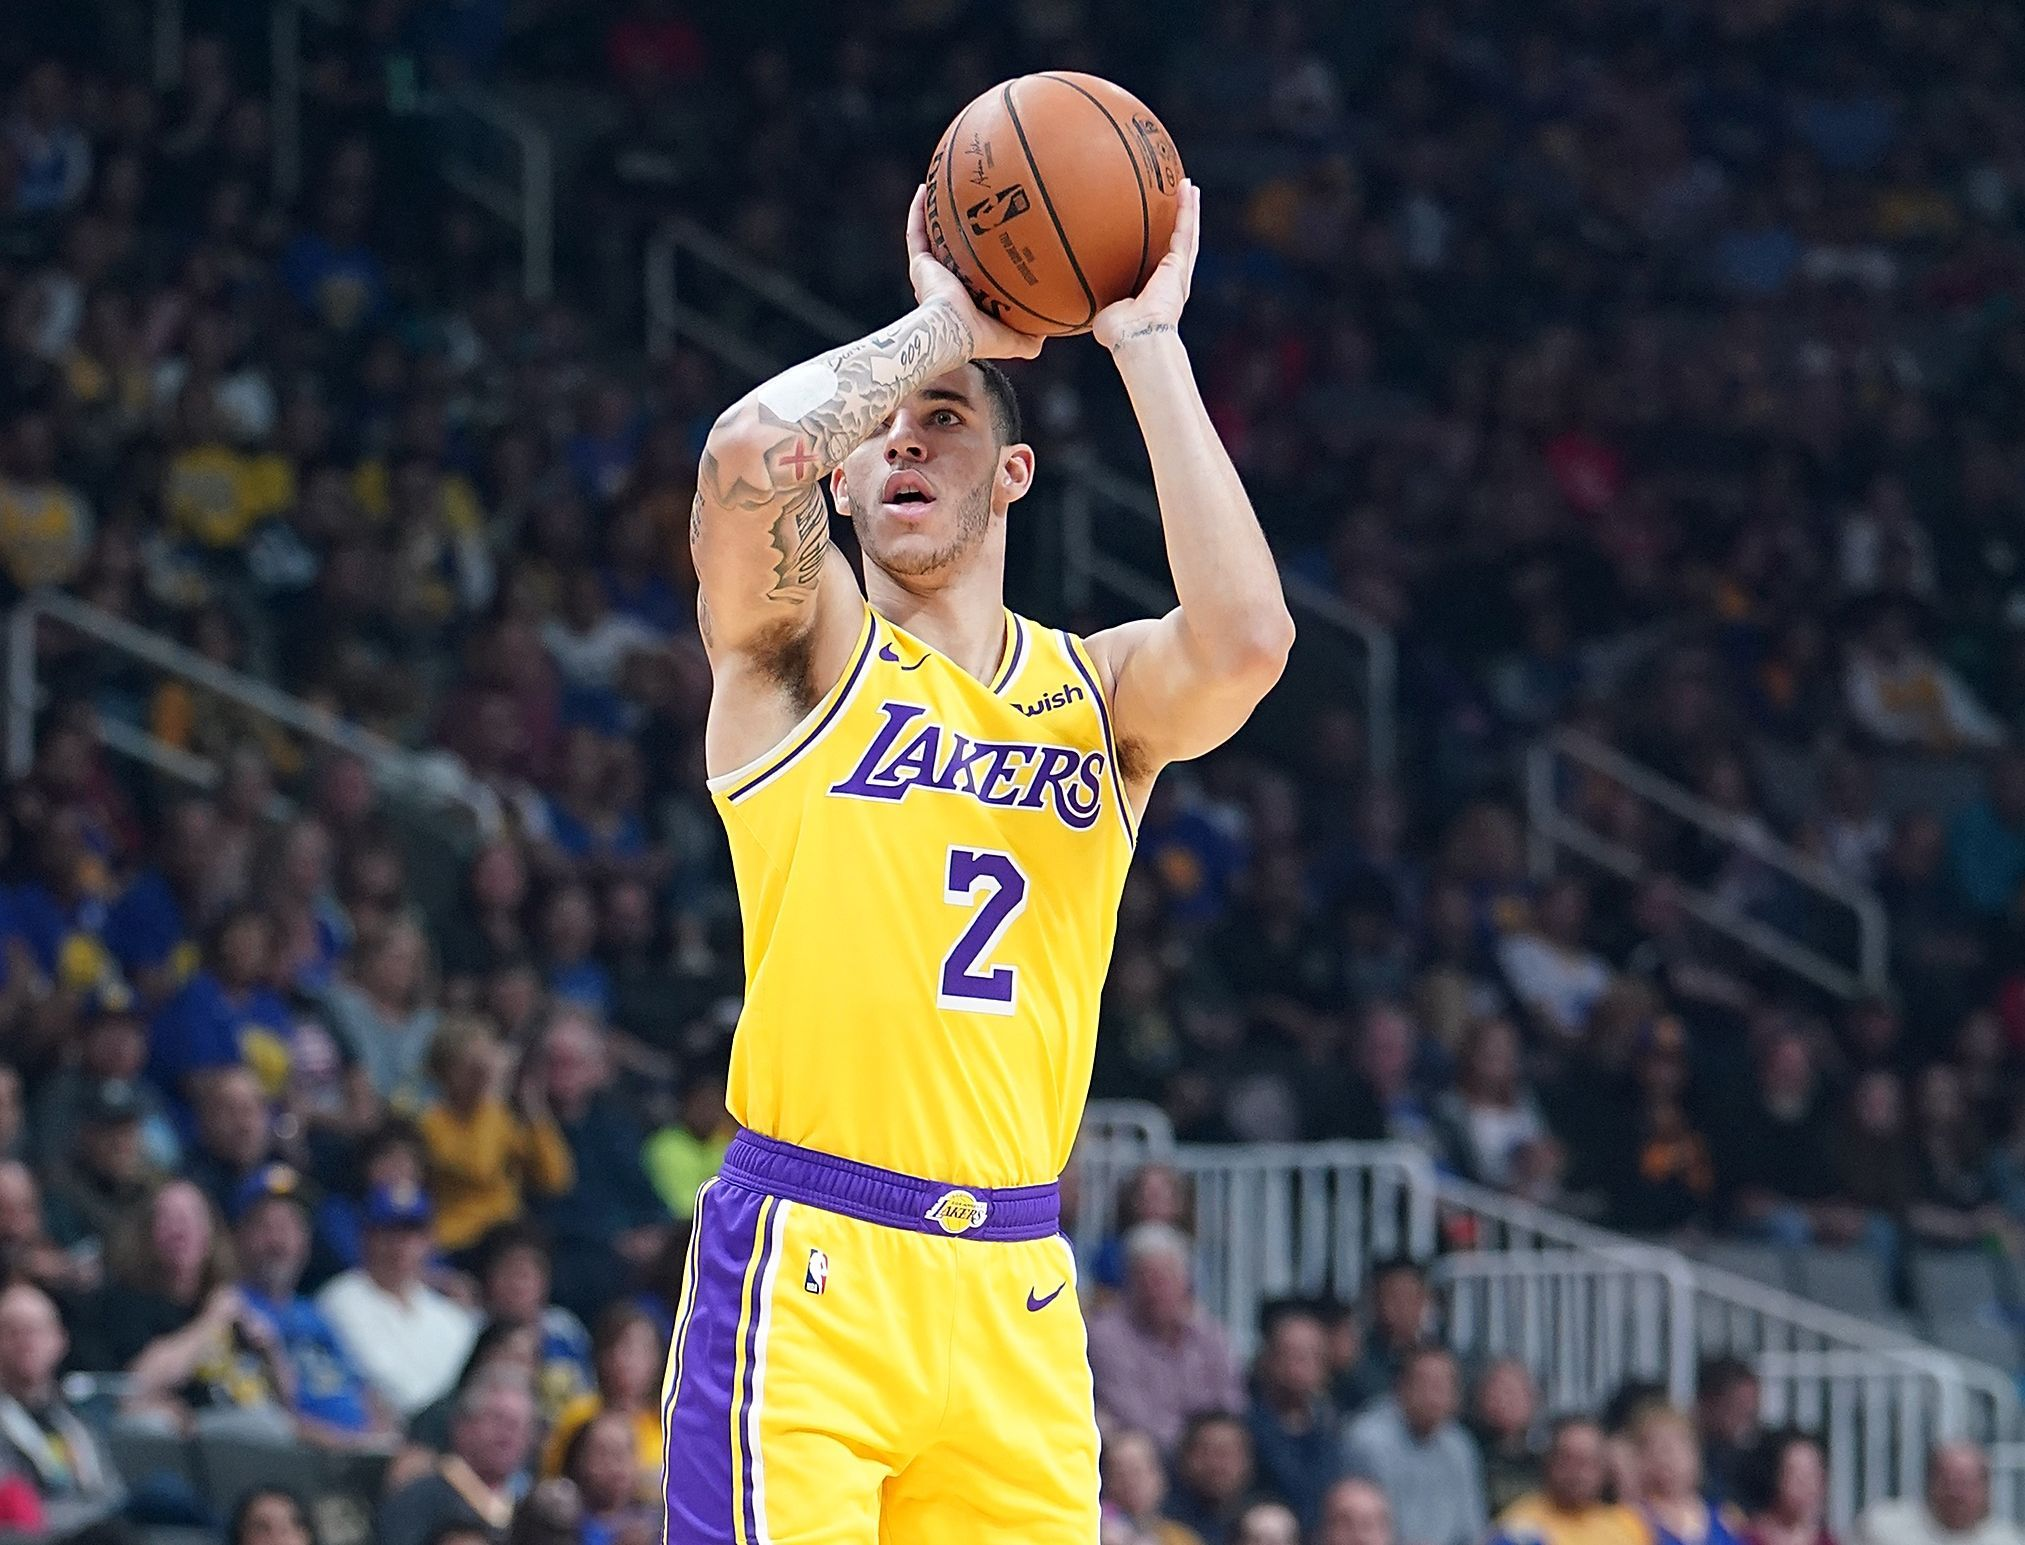 Jalen rose says lonzo ball doesnt fit with los angeles